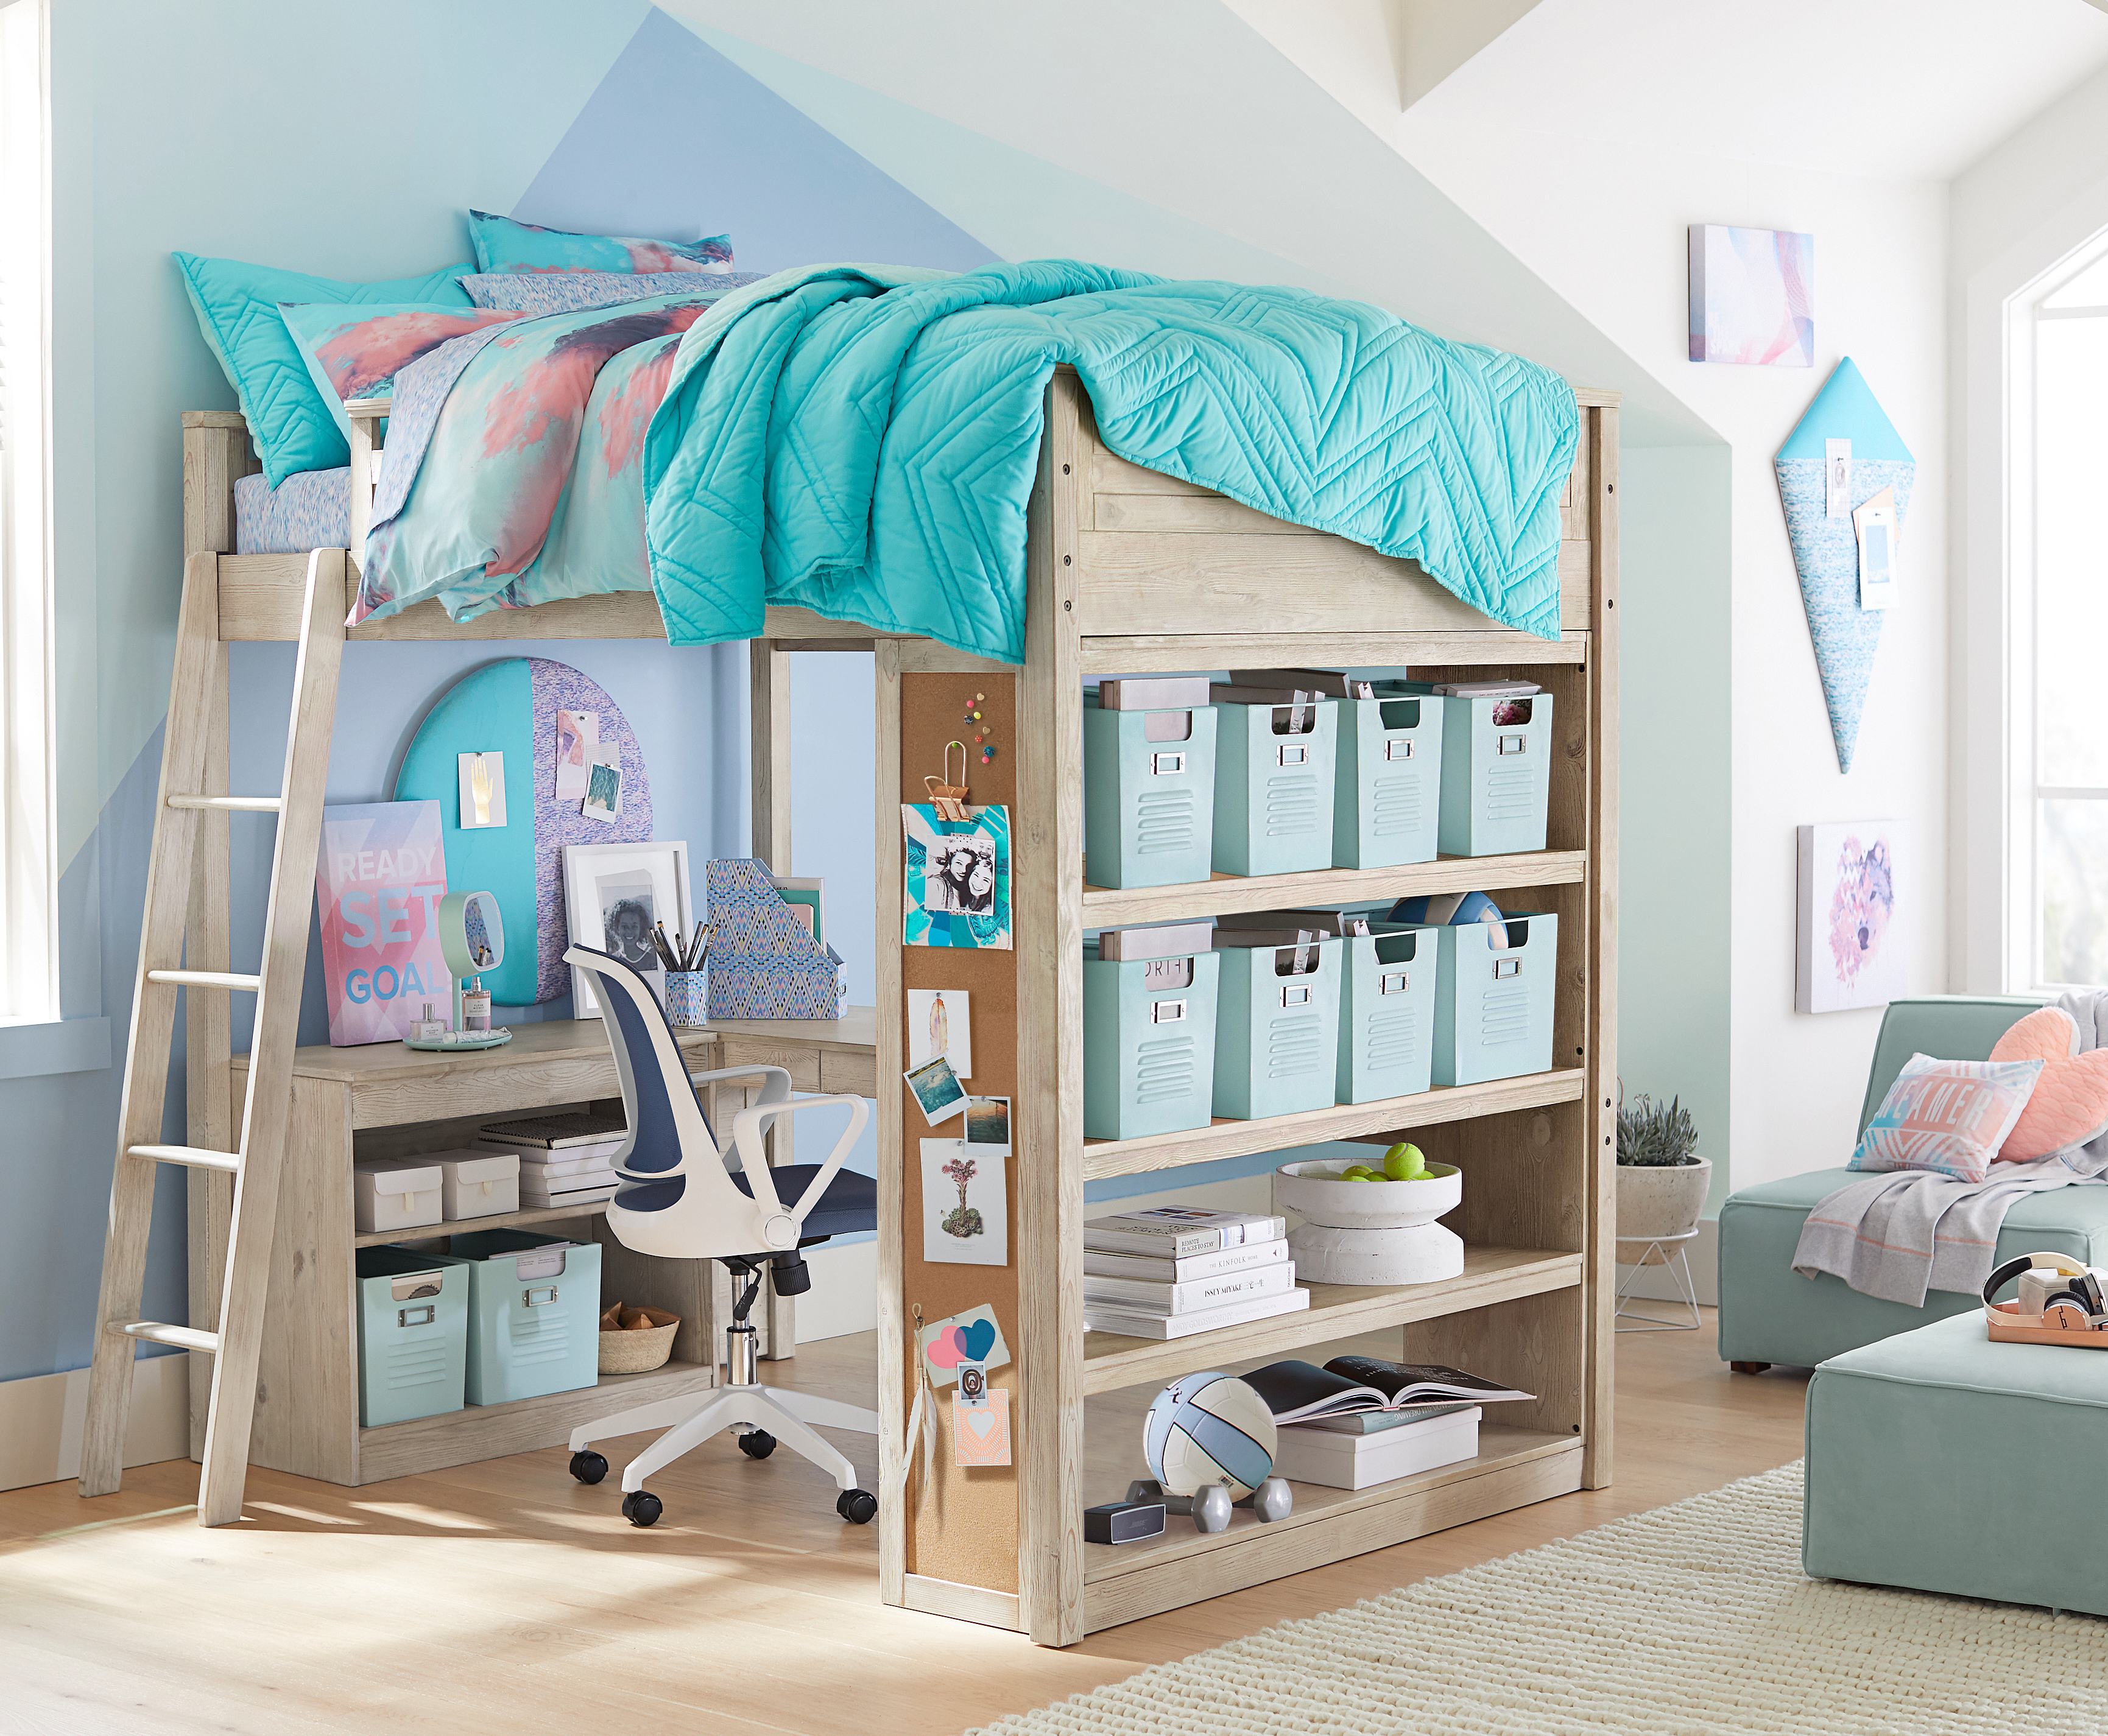 ivivva Loft Bedroom